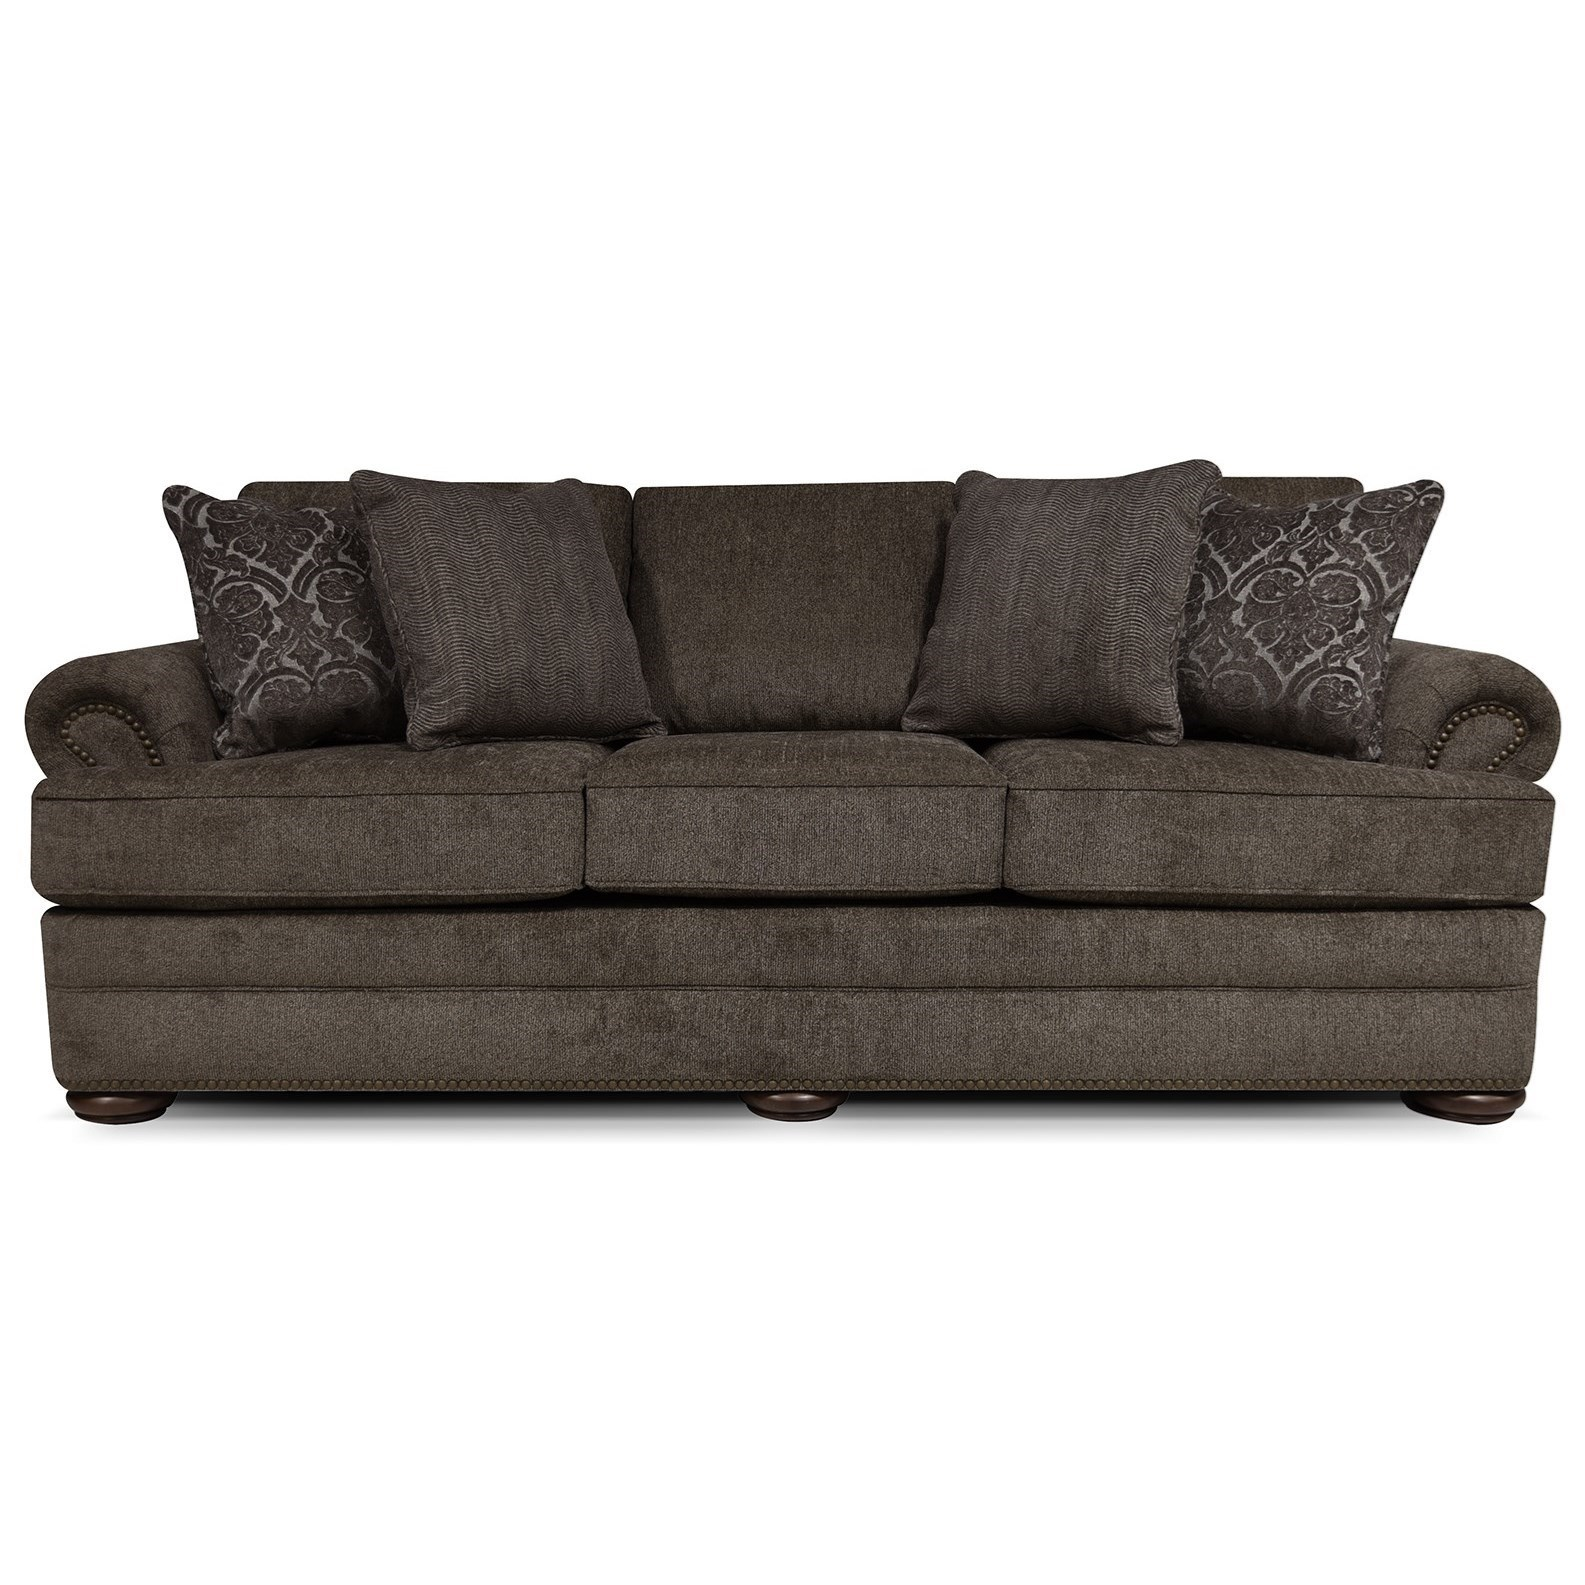 Exceptionnel England KnoxSofa With Nailhead Trim ...